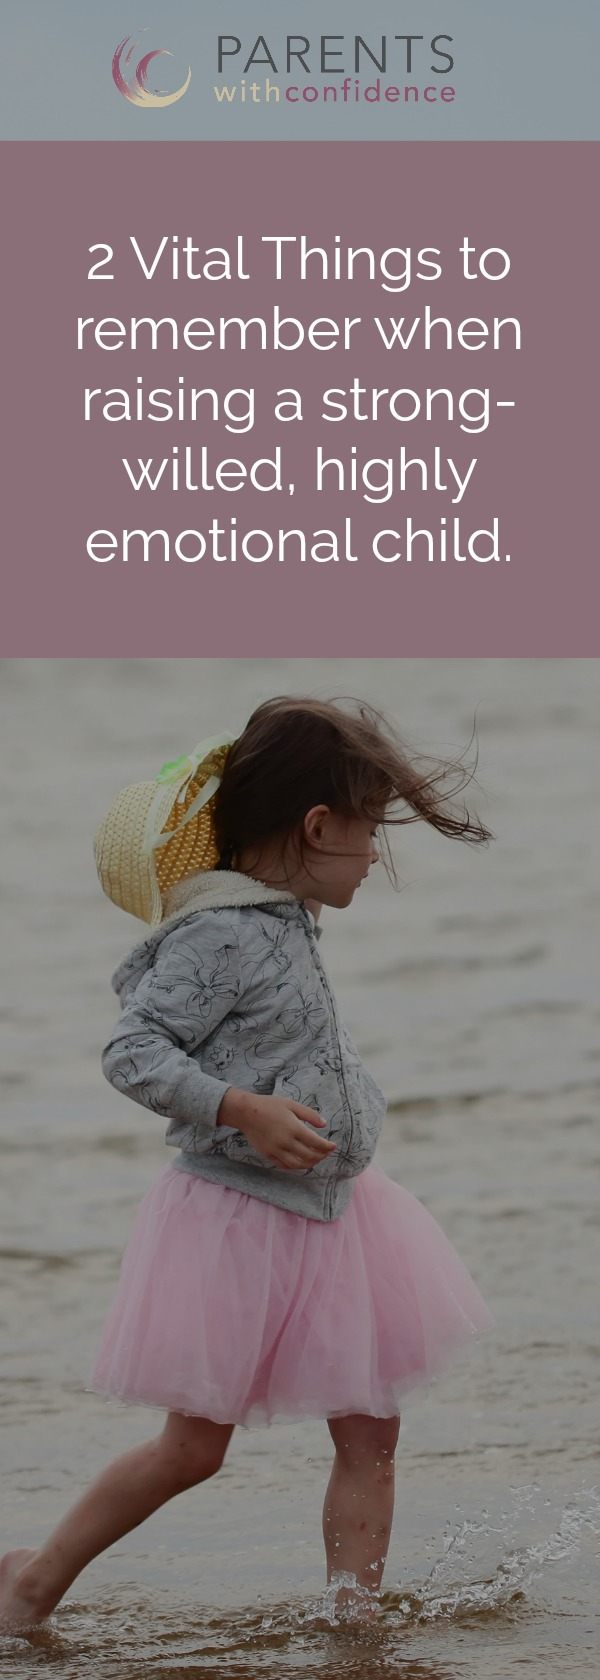 The Best Parent Mindset for Raising a Strong-Willed Child. Feel exhausting trying to be a good parent to your emotionally intense, strong-willed, difficult child? Looking at your child with a different mindset can change their life.